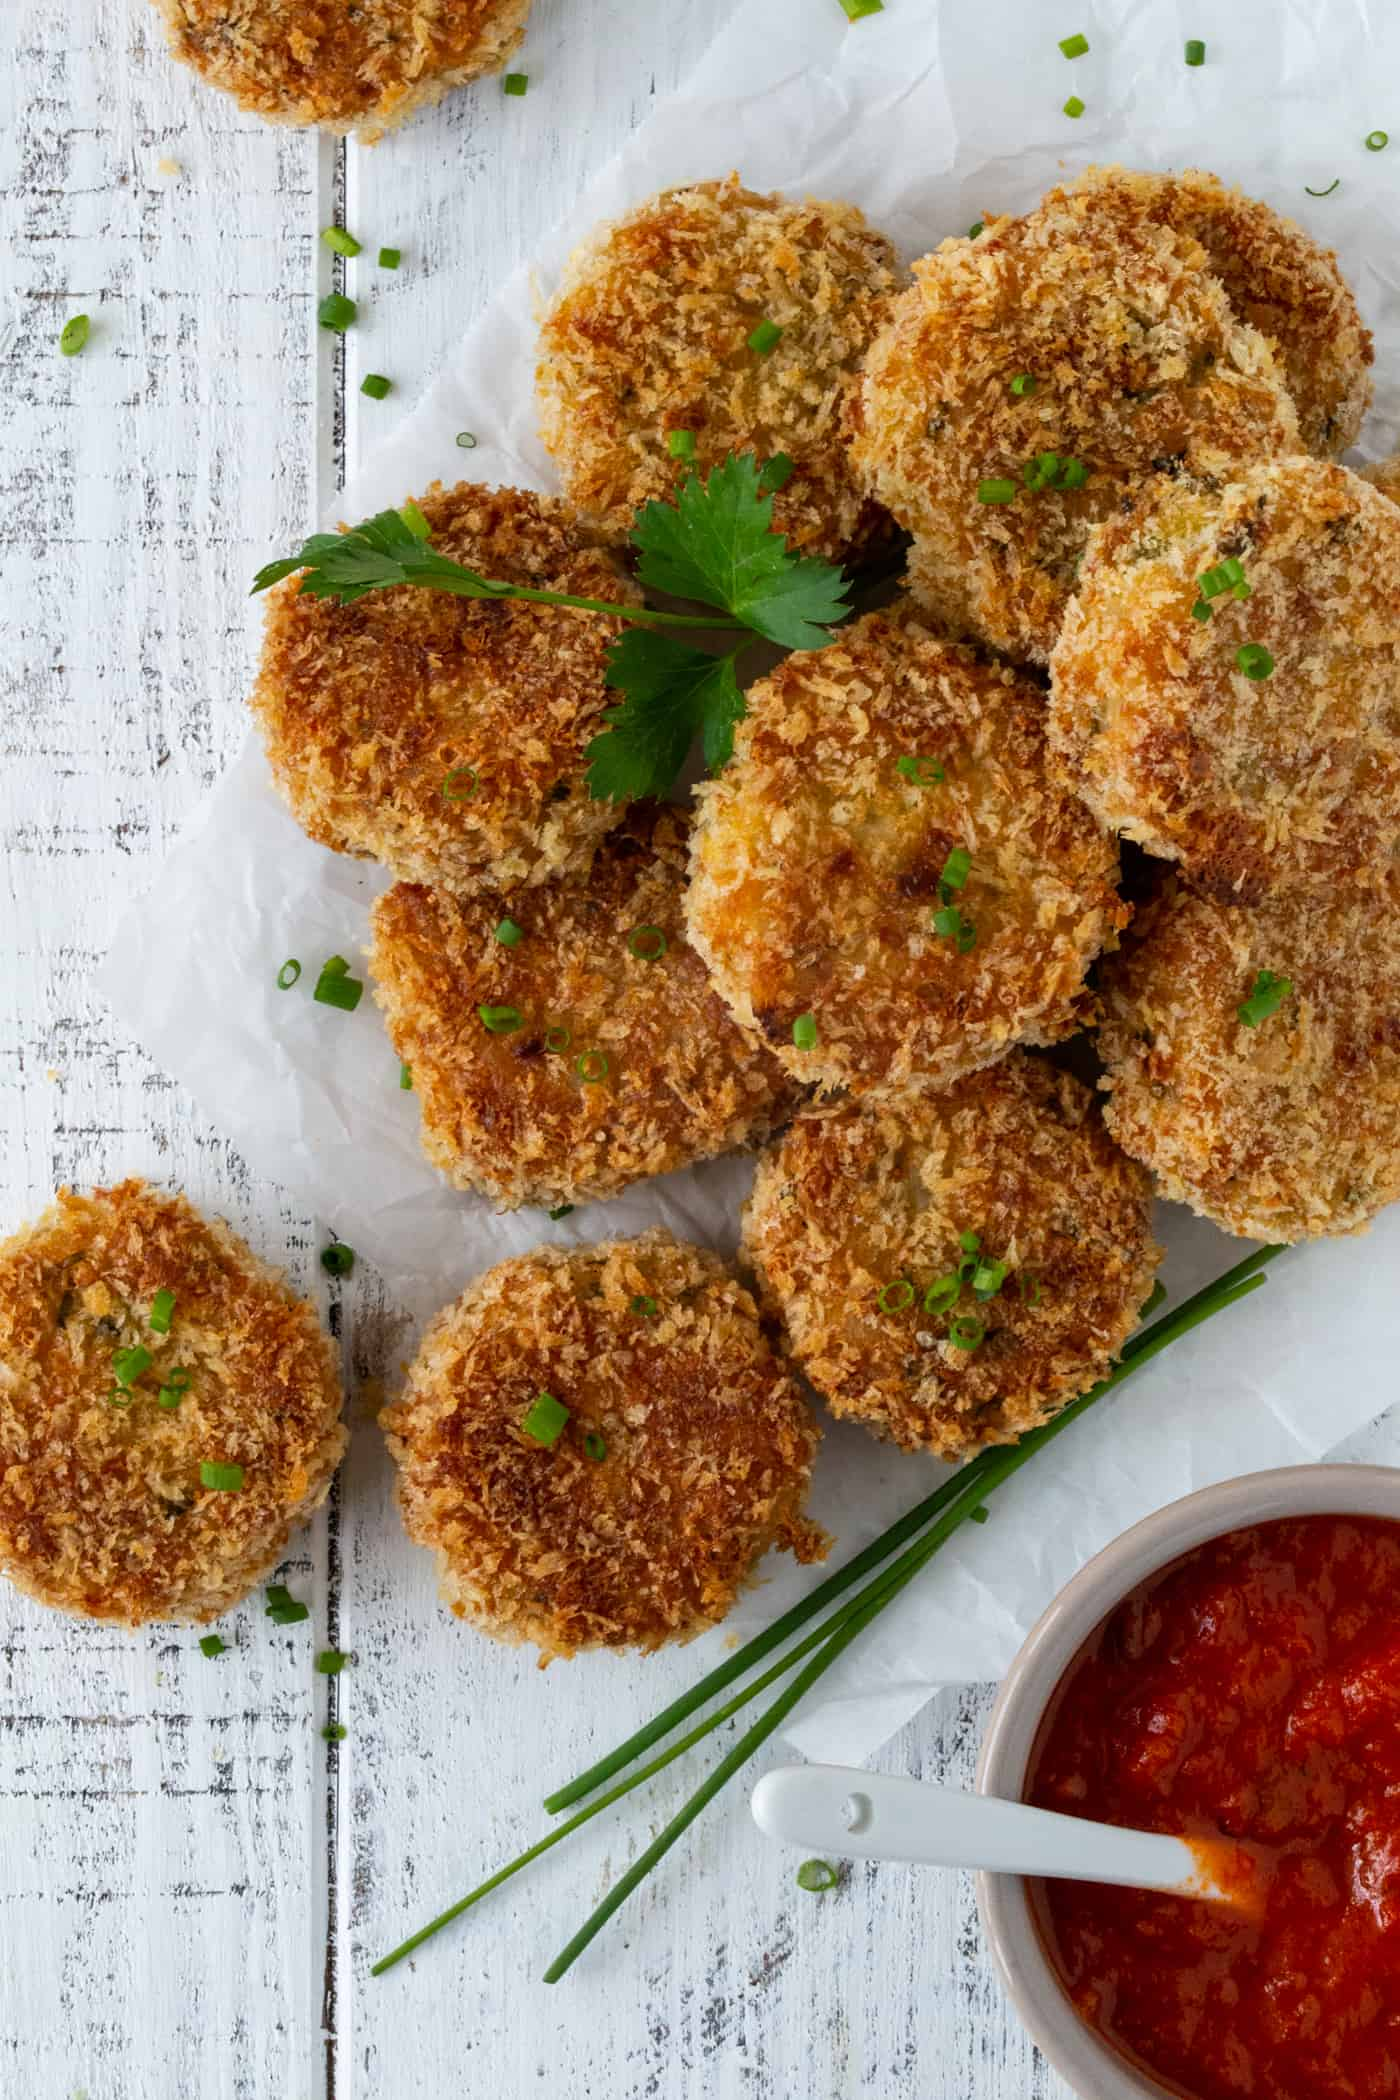 Pile of Cakes on white parchment paper and garnished with fresh chives, grated parmesan cheese and chunky marinara sauce.